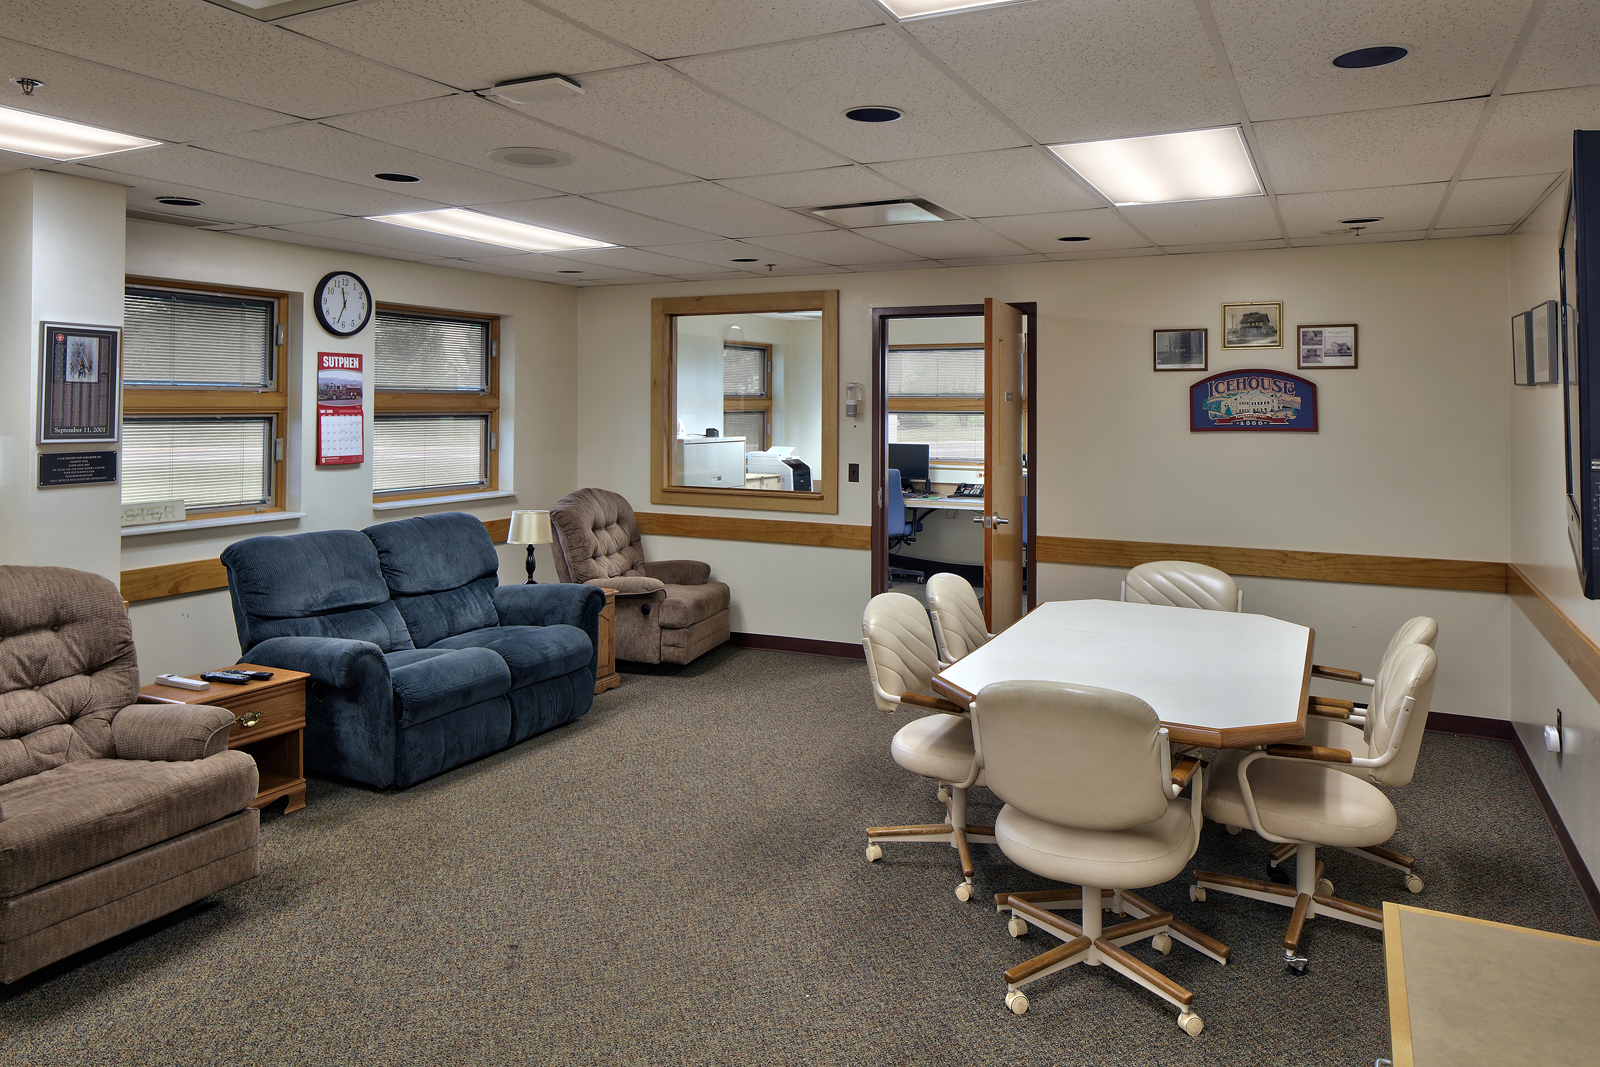 west-webster-fs-lounge.jpg